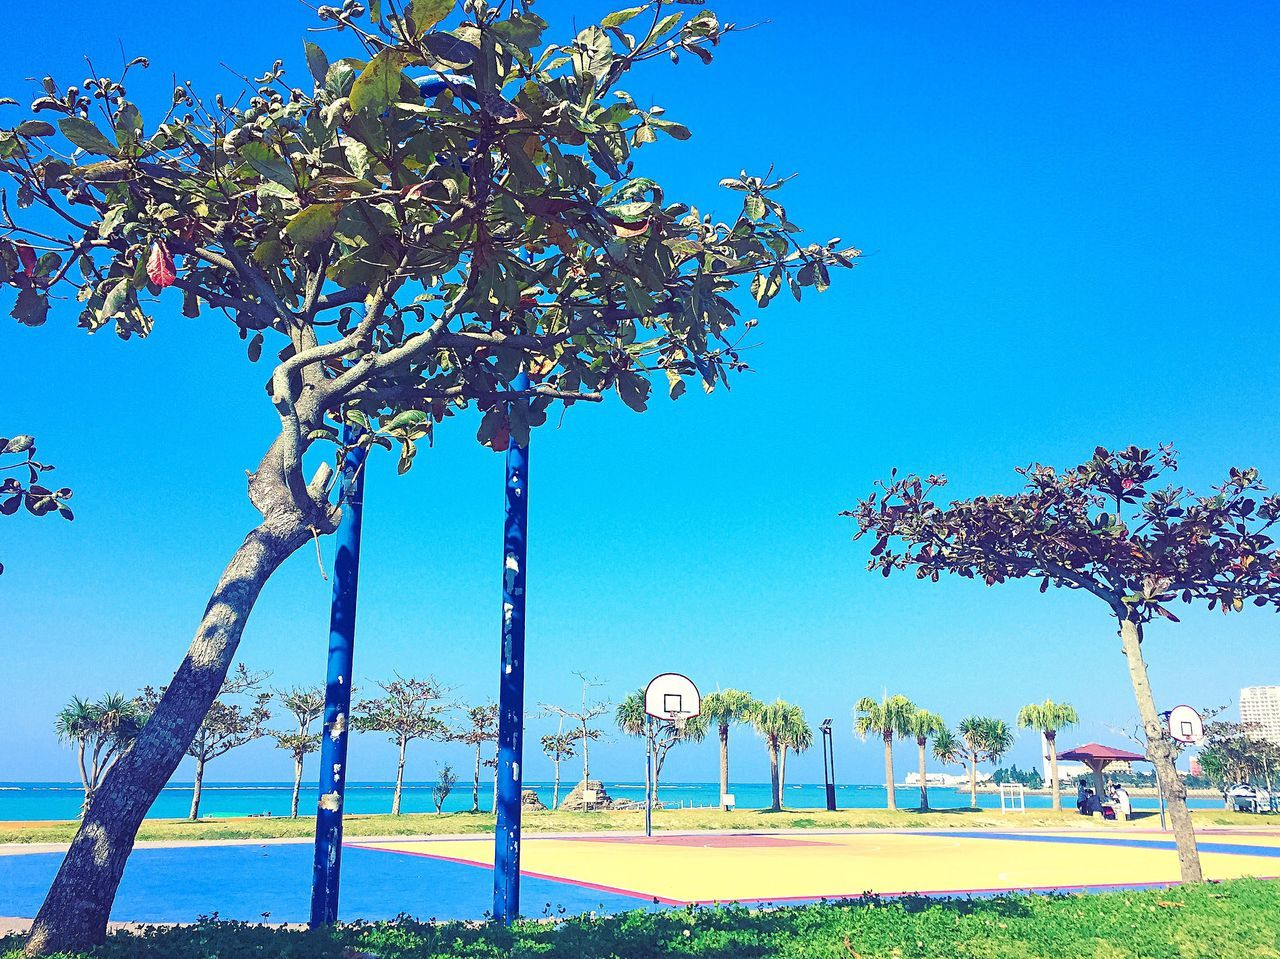 安良波公園 アラハビーチ 沖縄 Okinawa OKINAWA, JAPAN Basketball Court Basketballcourt Basketball Hoop Sky Trees Blue Sky Bluesky Araha Beach Bluesea